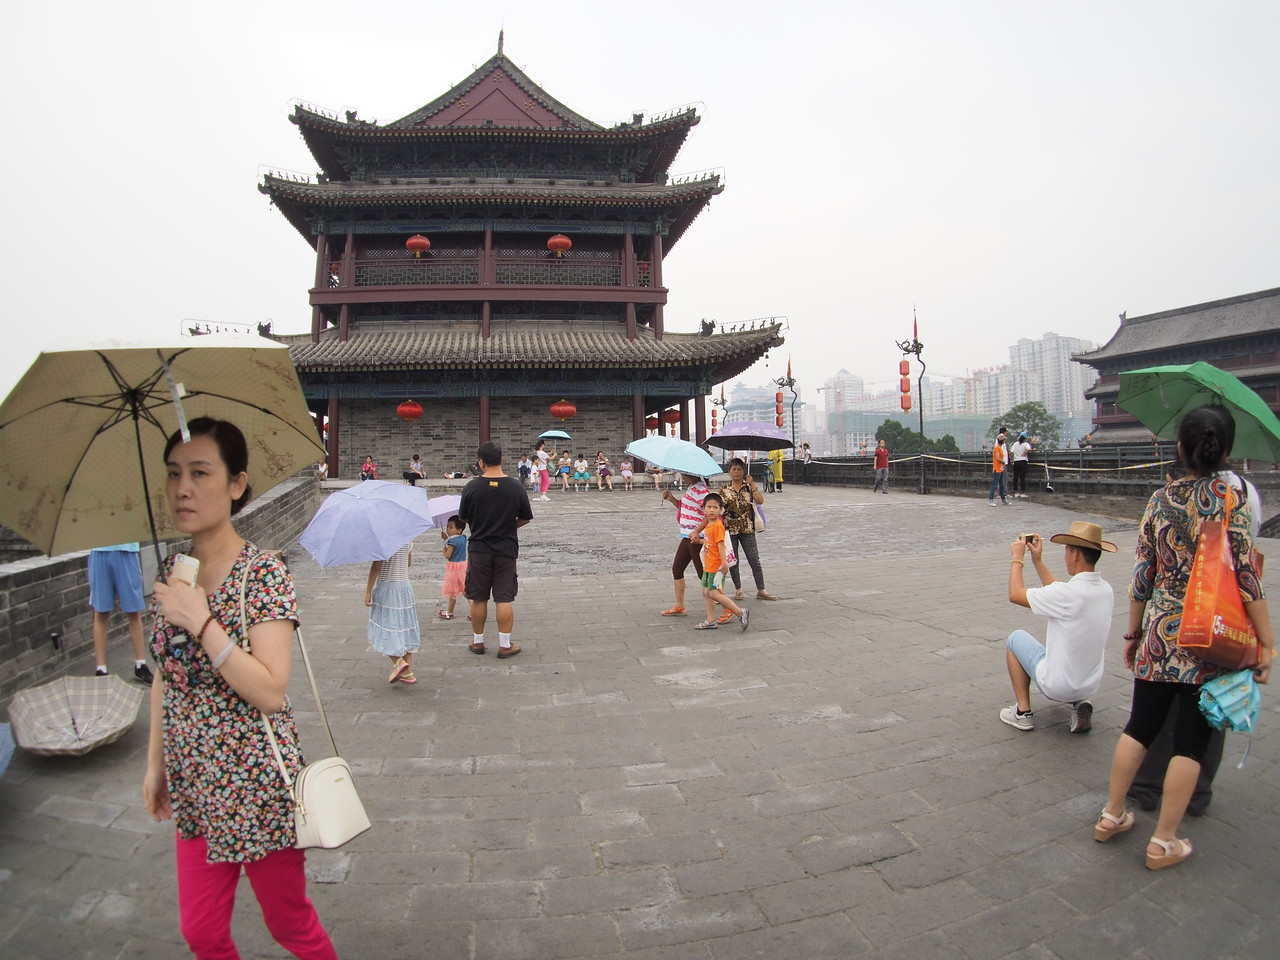 20140816_1412_2678 on top of the Xi'an city walls (城墙)